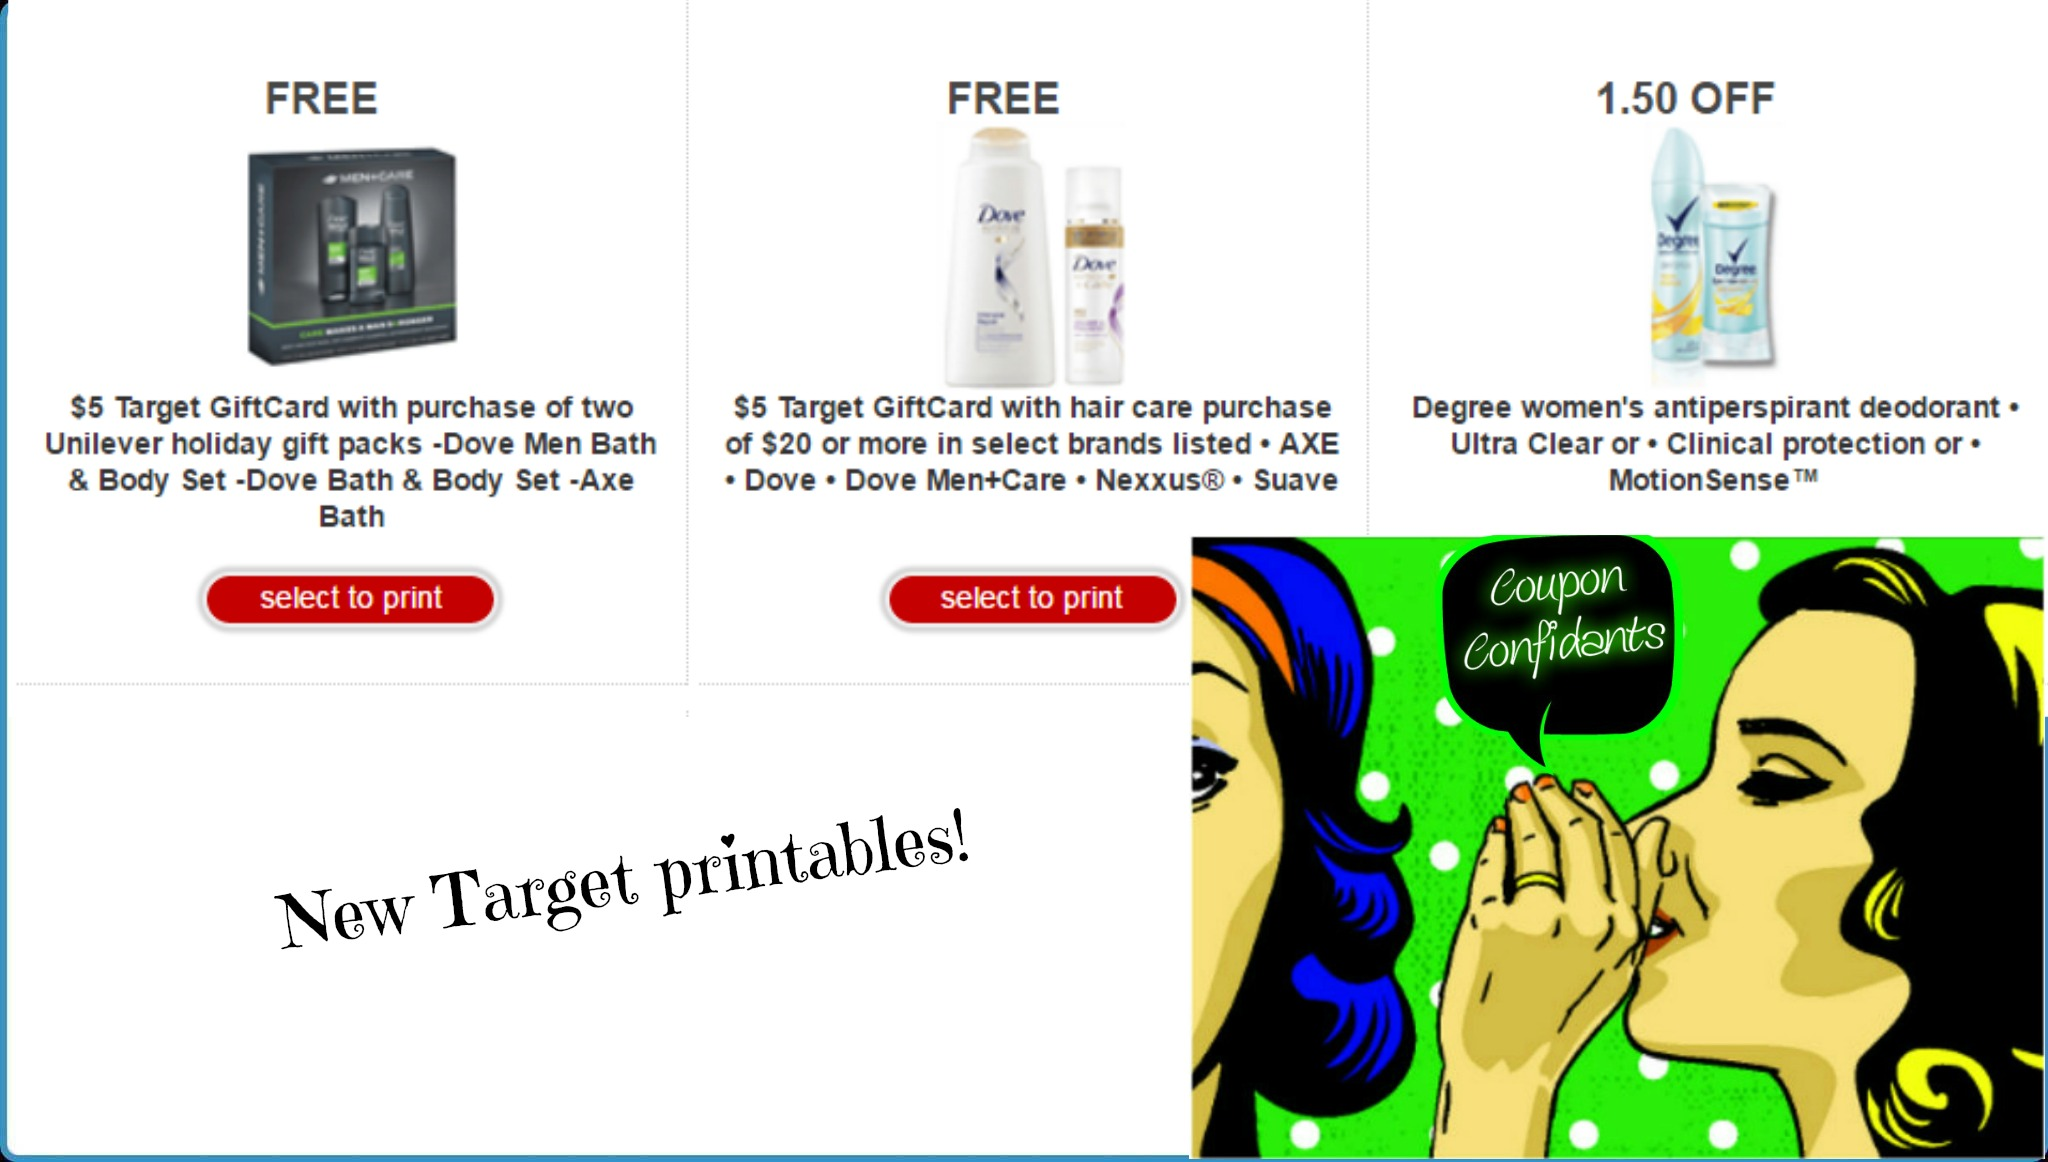 picture relating to Unilever Printable Coupons known as 3 Scorching fresh new Concentration printable discount codes! ⋆ Coupon Confidants